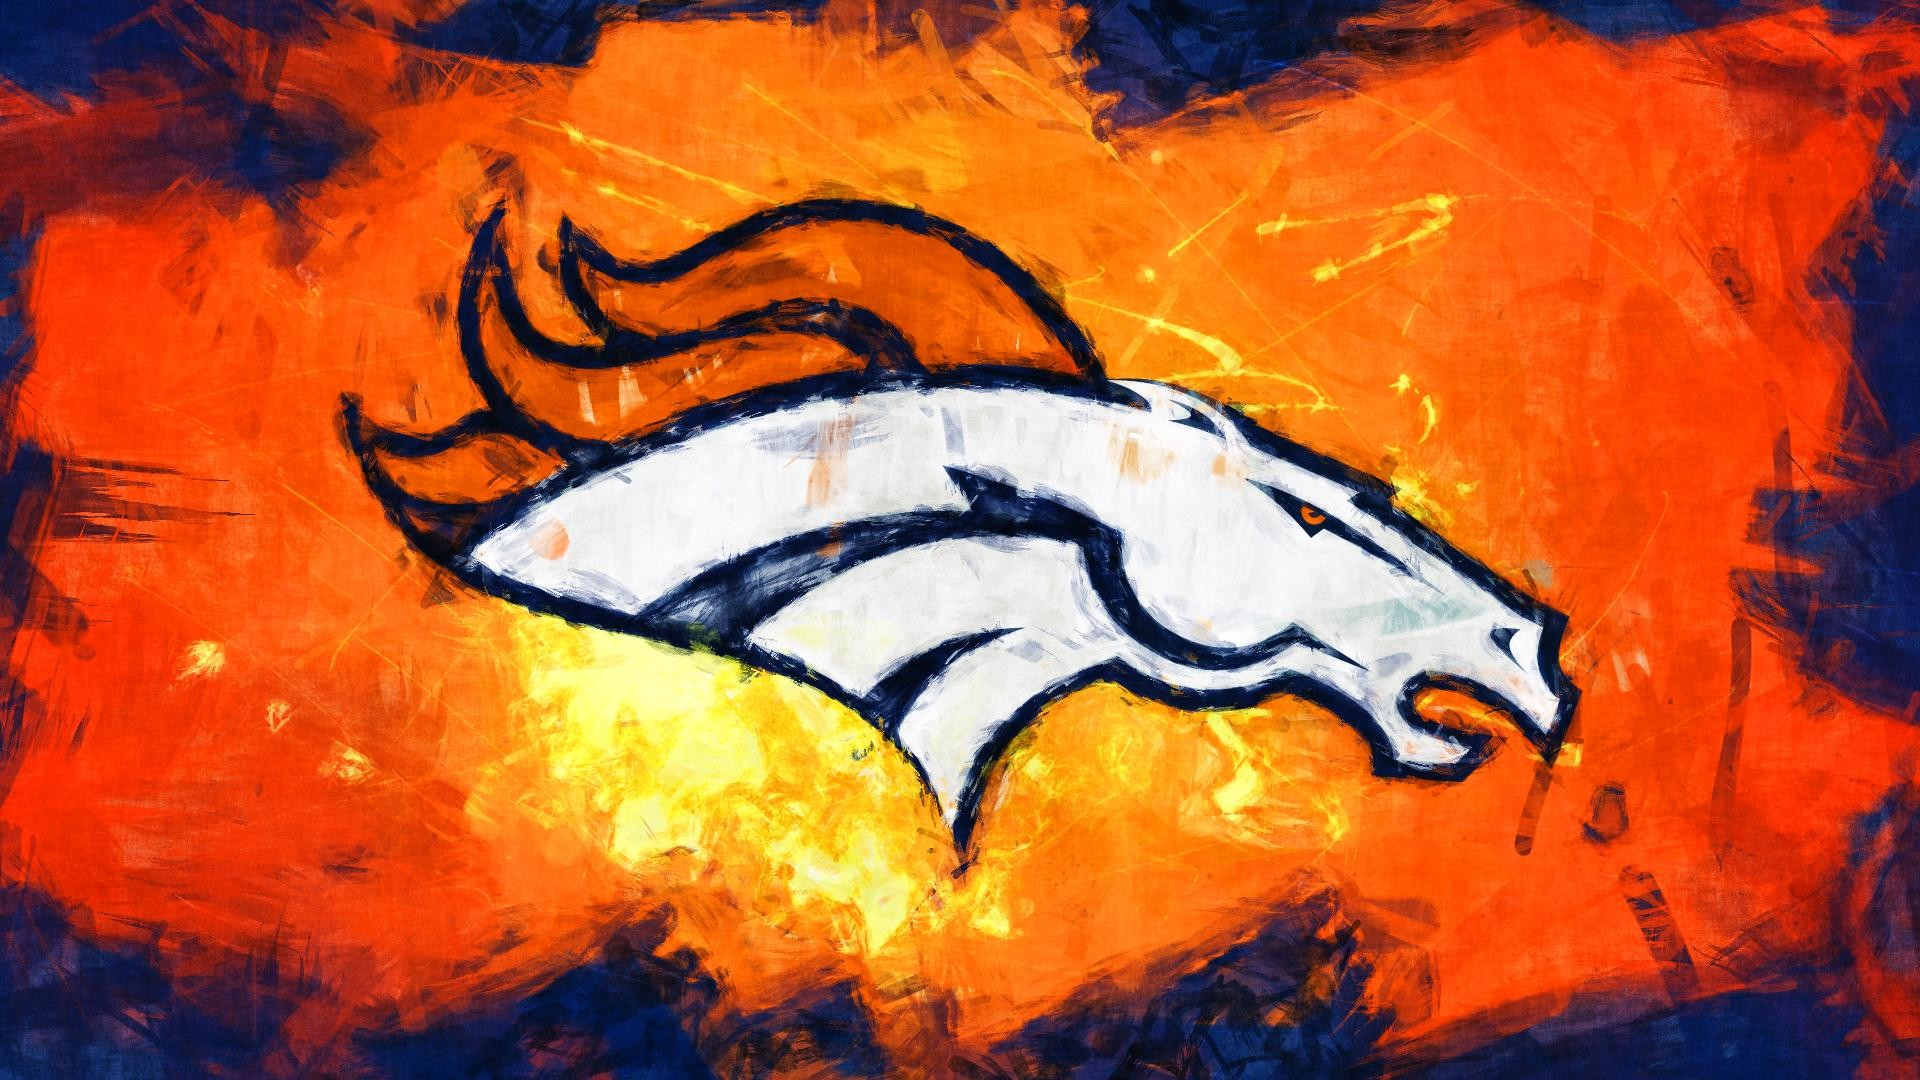 Denver Broncos Wallpapers Images Photos Pictures Backgrounds 1920×1080 Denver  Broncos Wallpaper (49 Wallpapers